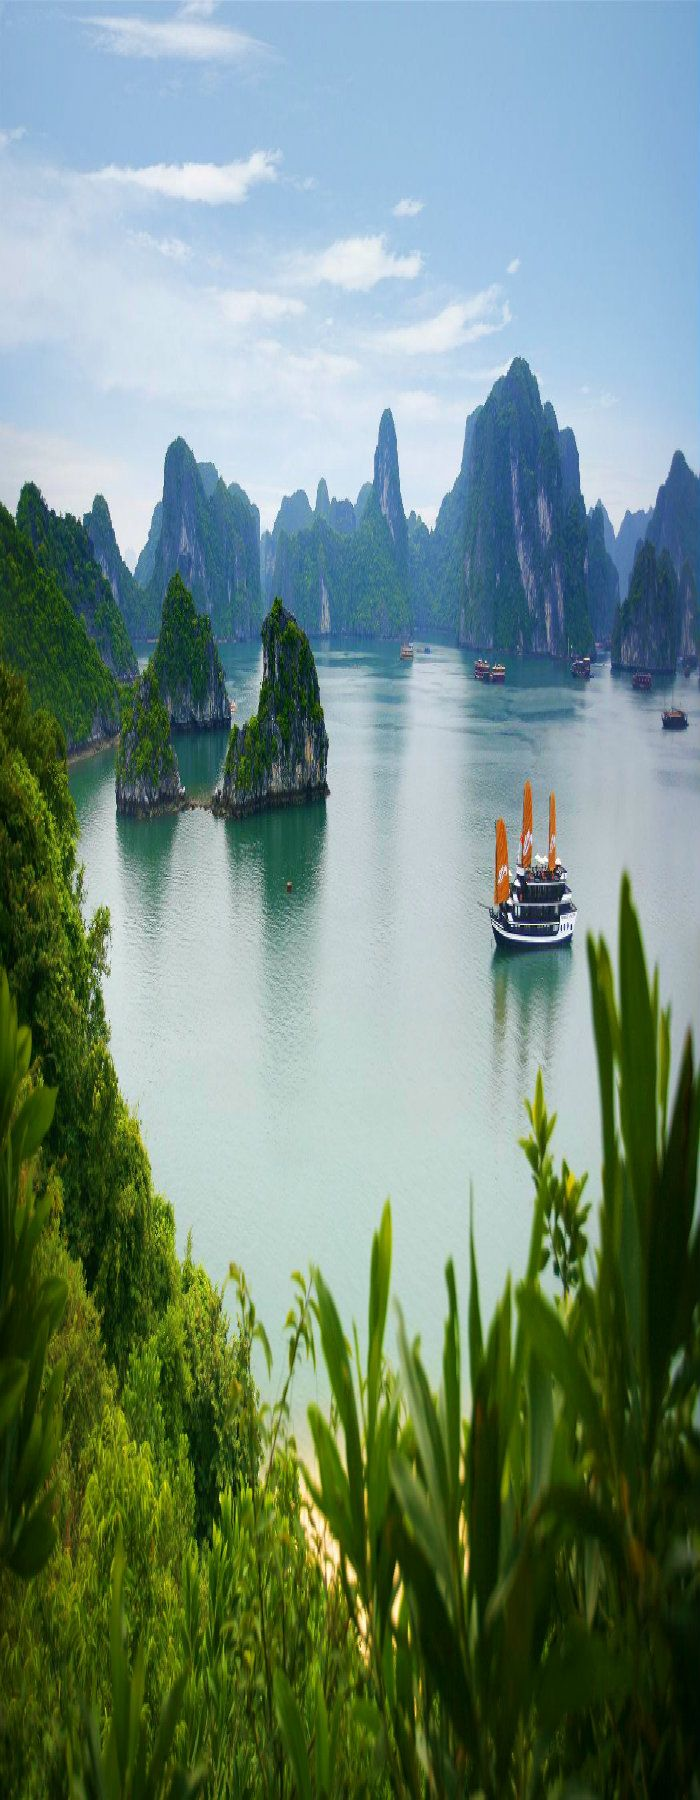 vietnam , capital hanoi ( thang long ) , daila city , north vietnam , ha long bay